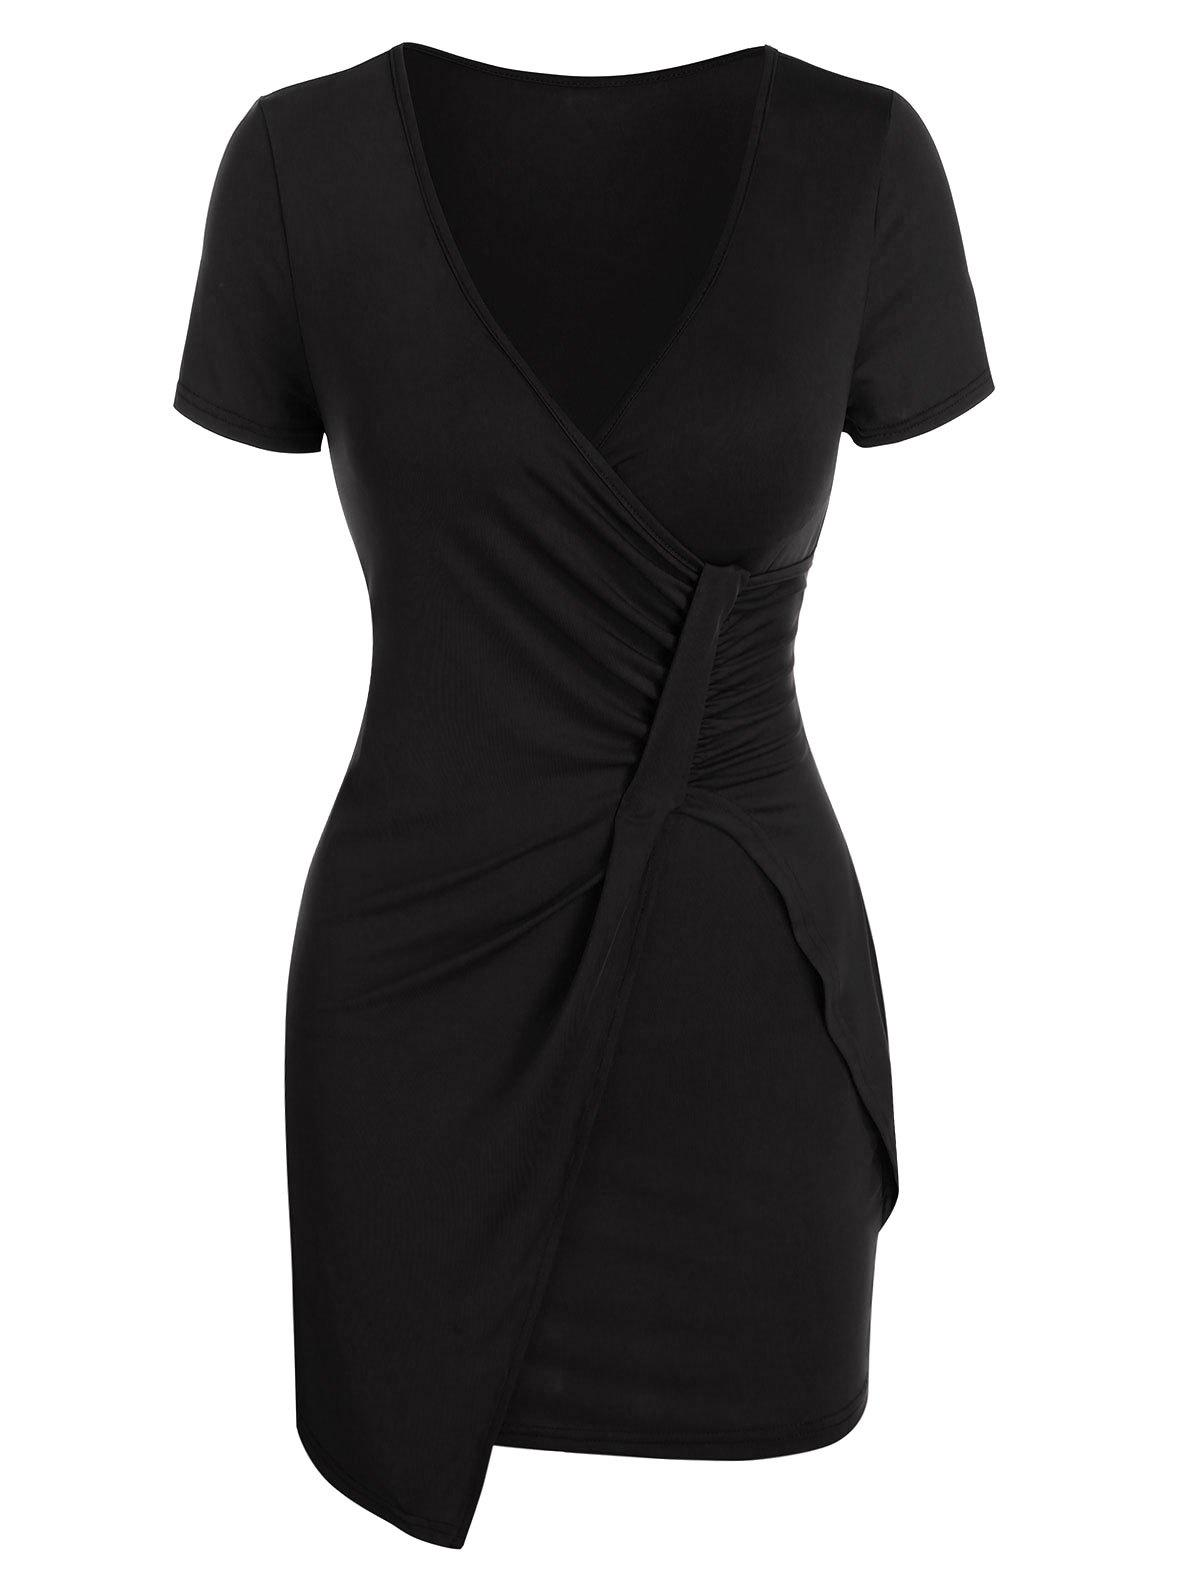 Plunge Neck Ruched Asymmetric Sheath Dress - BLACK L